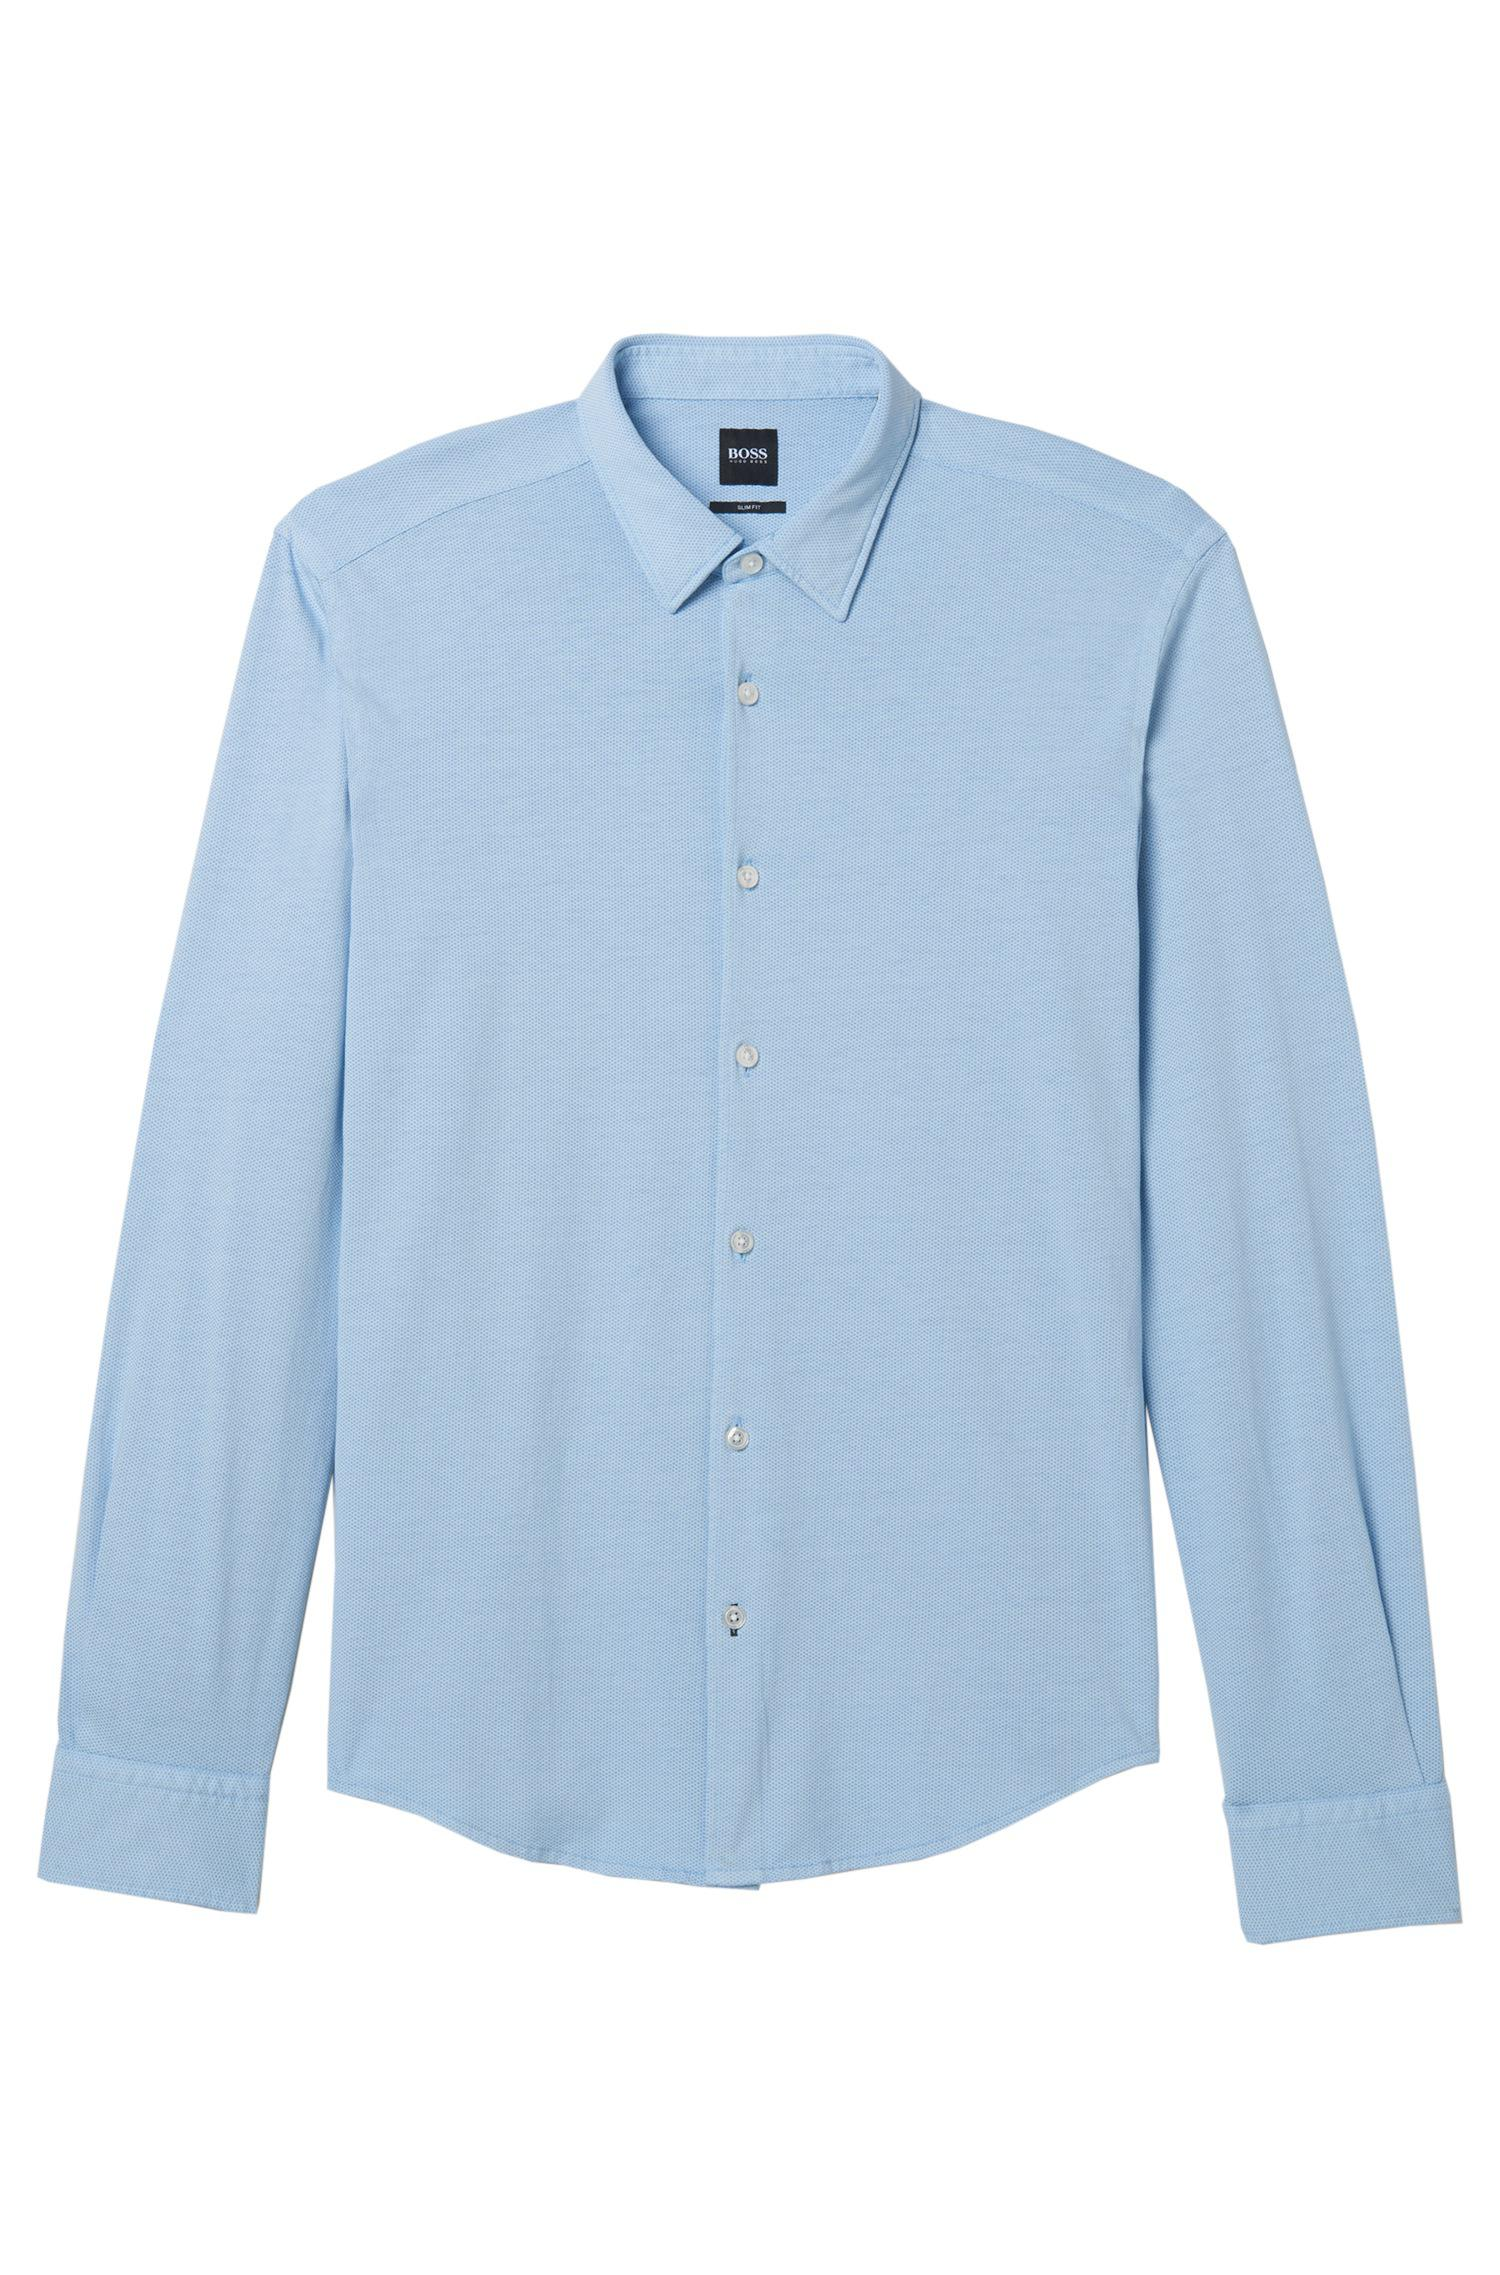 1cf151bb BOSS Cotton Sport Shirt, Slim Fit | Reid F in Blue for Men - Lyst